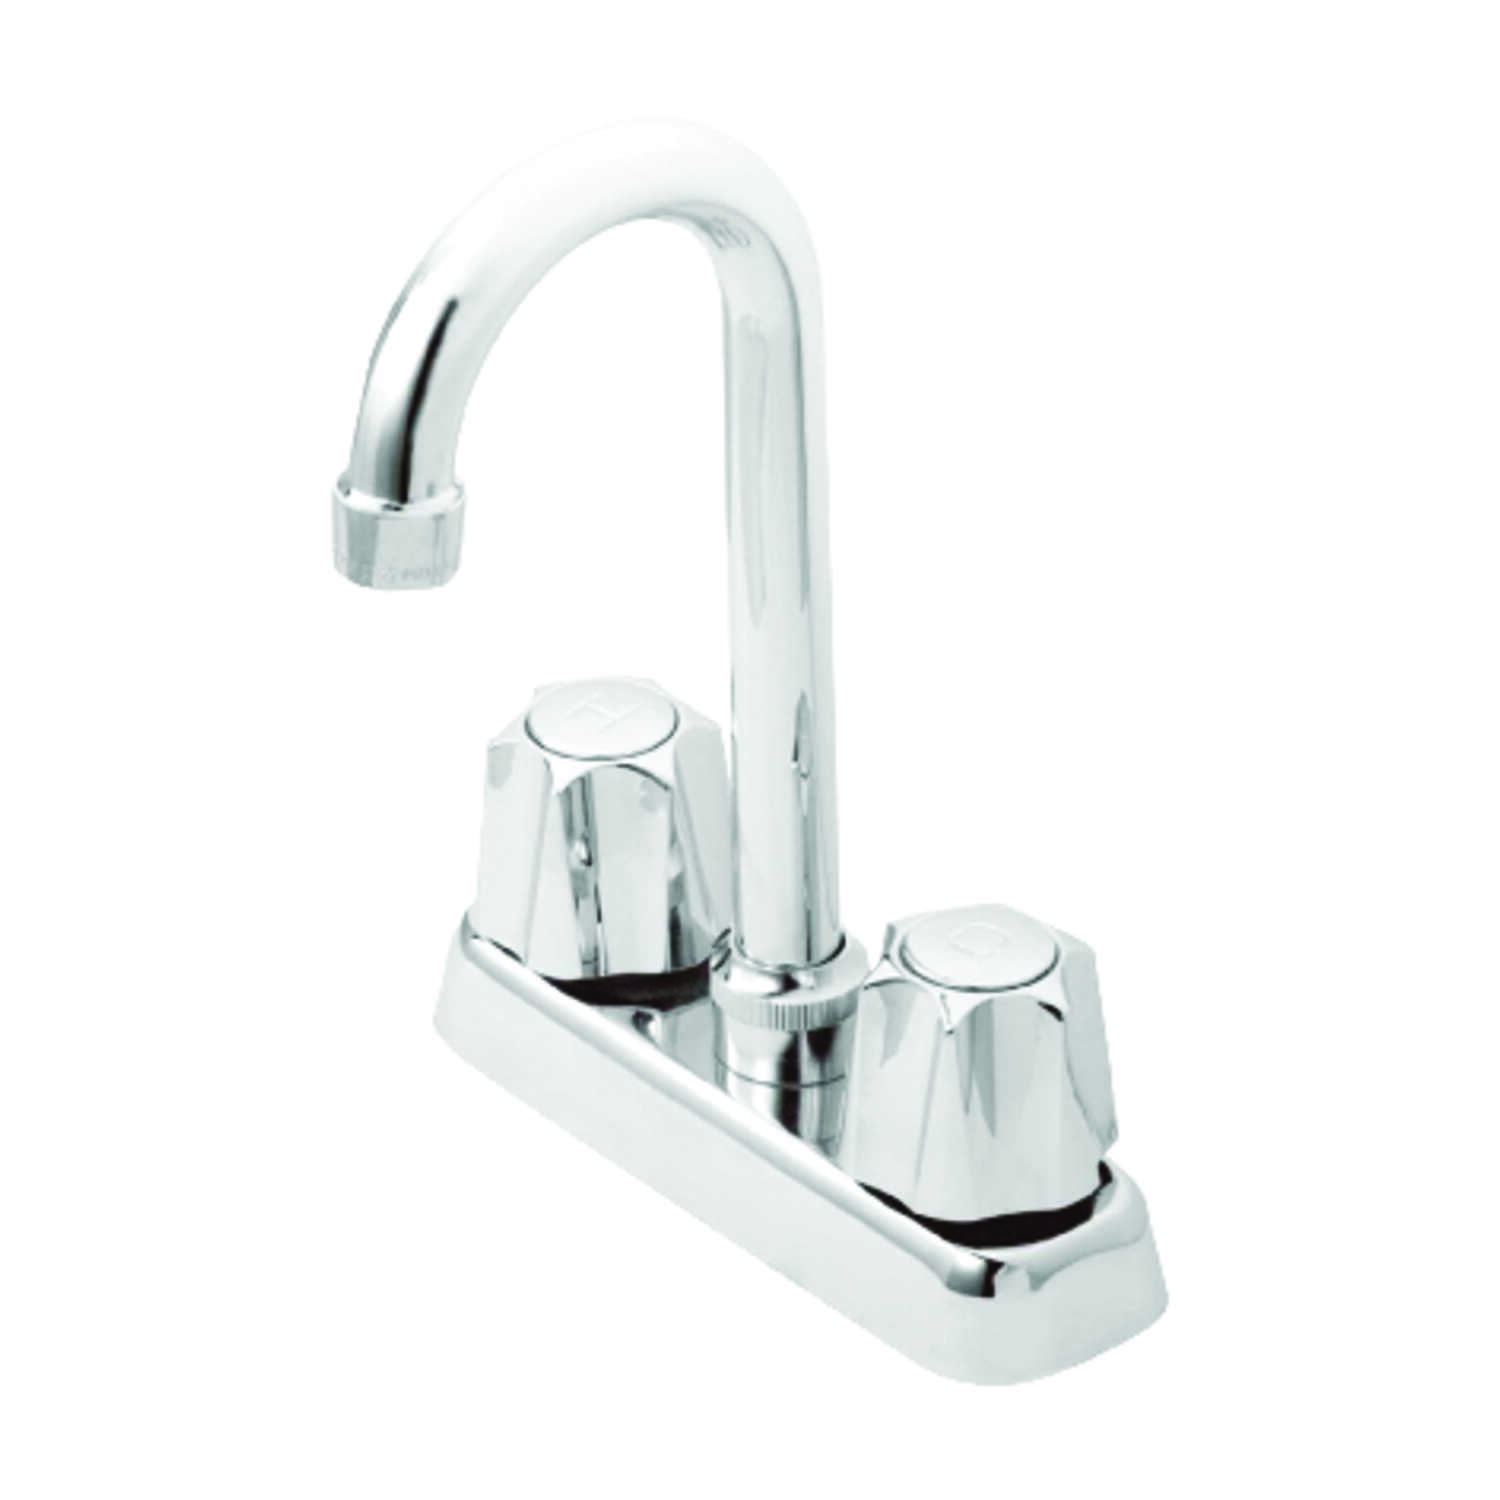 OakBrook  Washerless Cartridge  Two Handle  Bar/Utility Faucet  4 in. Chrome